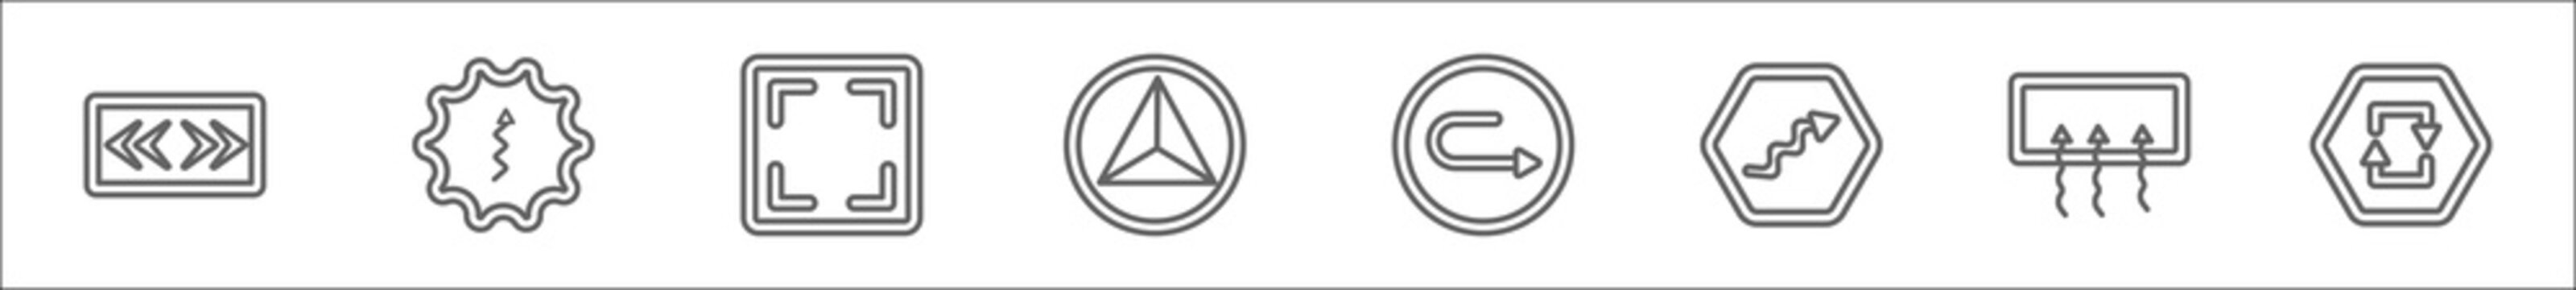 outline set of user interface line icons. linear vector icons such as two arrows pointing right and left, up arrow with scribble, size, triangular, rotated right arrow, squiggly arrow, rear window